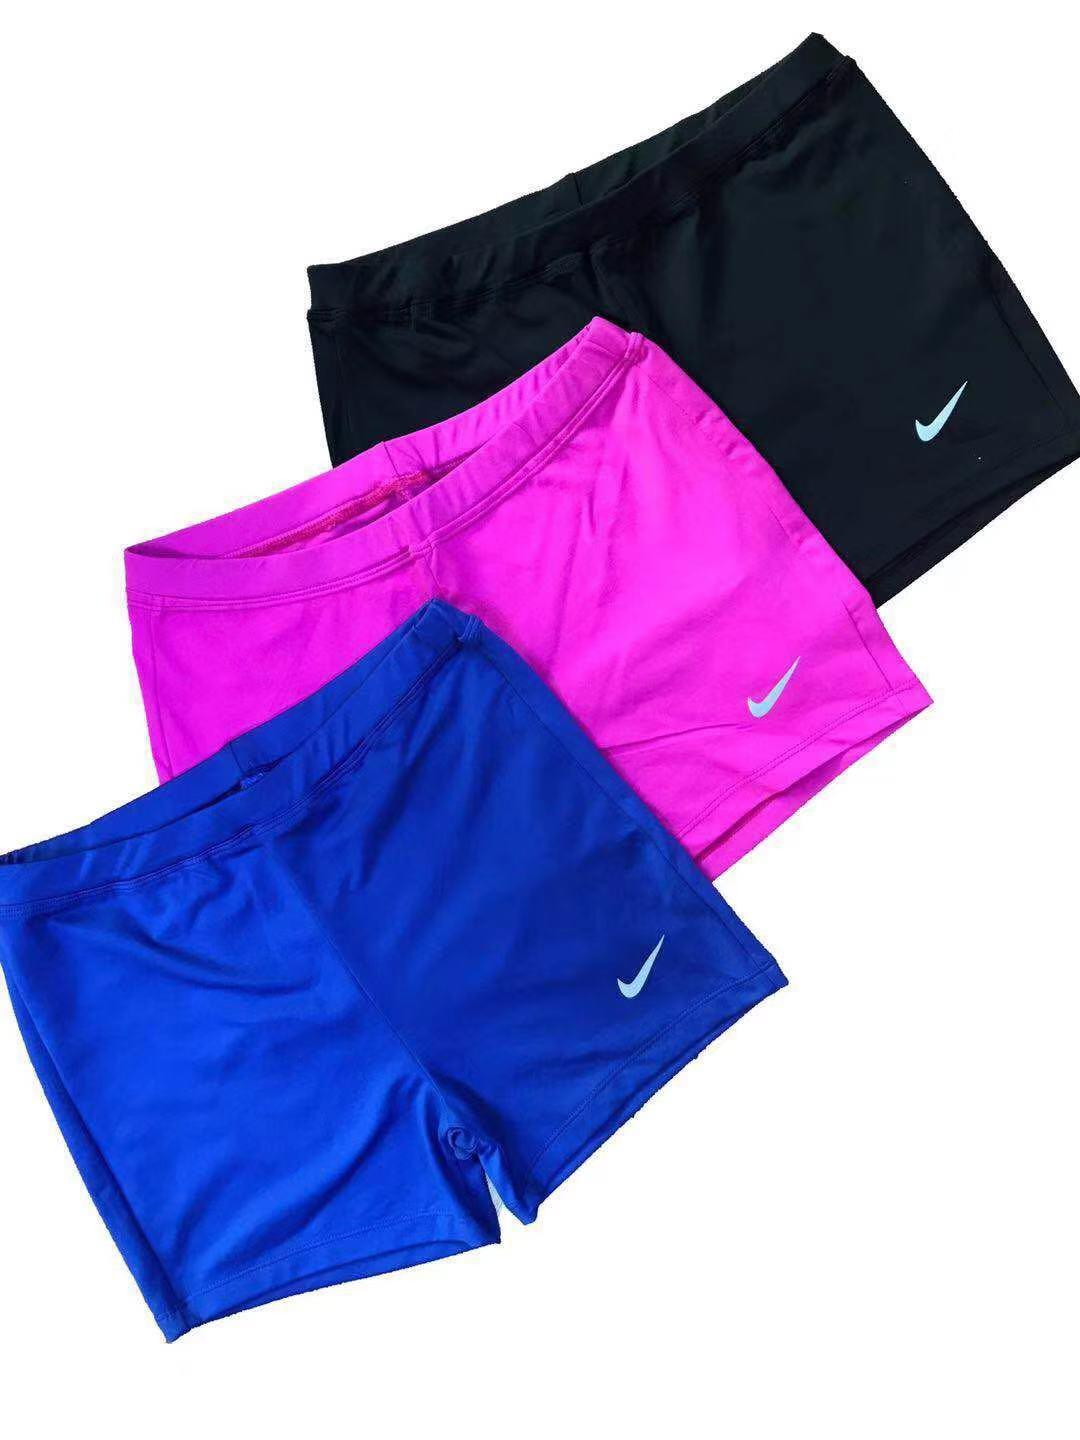 9a42b5dae085 Sports Shorts for Women for sale - Womens Sports Shorts Online Deals ...